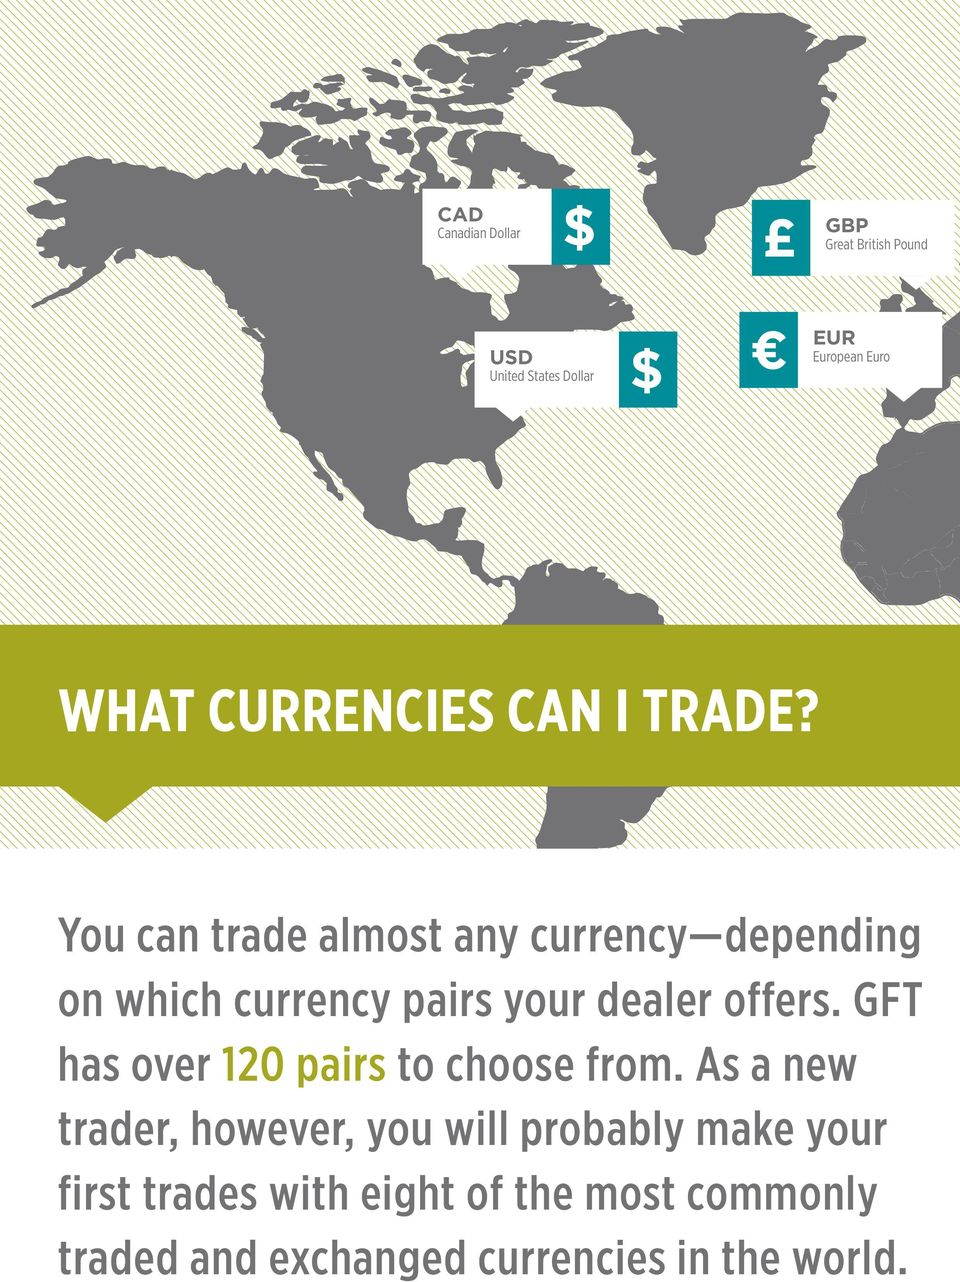 You can trade almost any currency depending on which currency pairs your dealer offers.